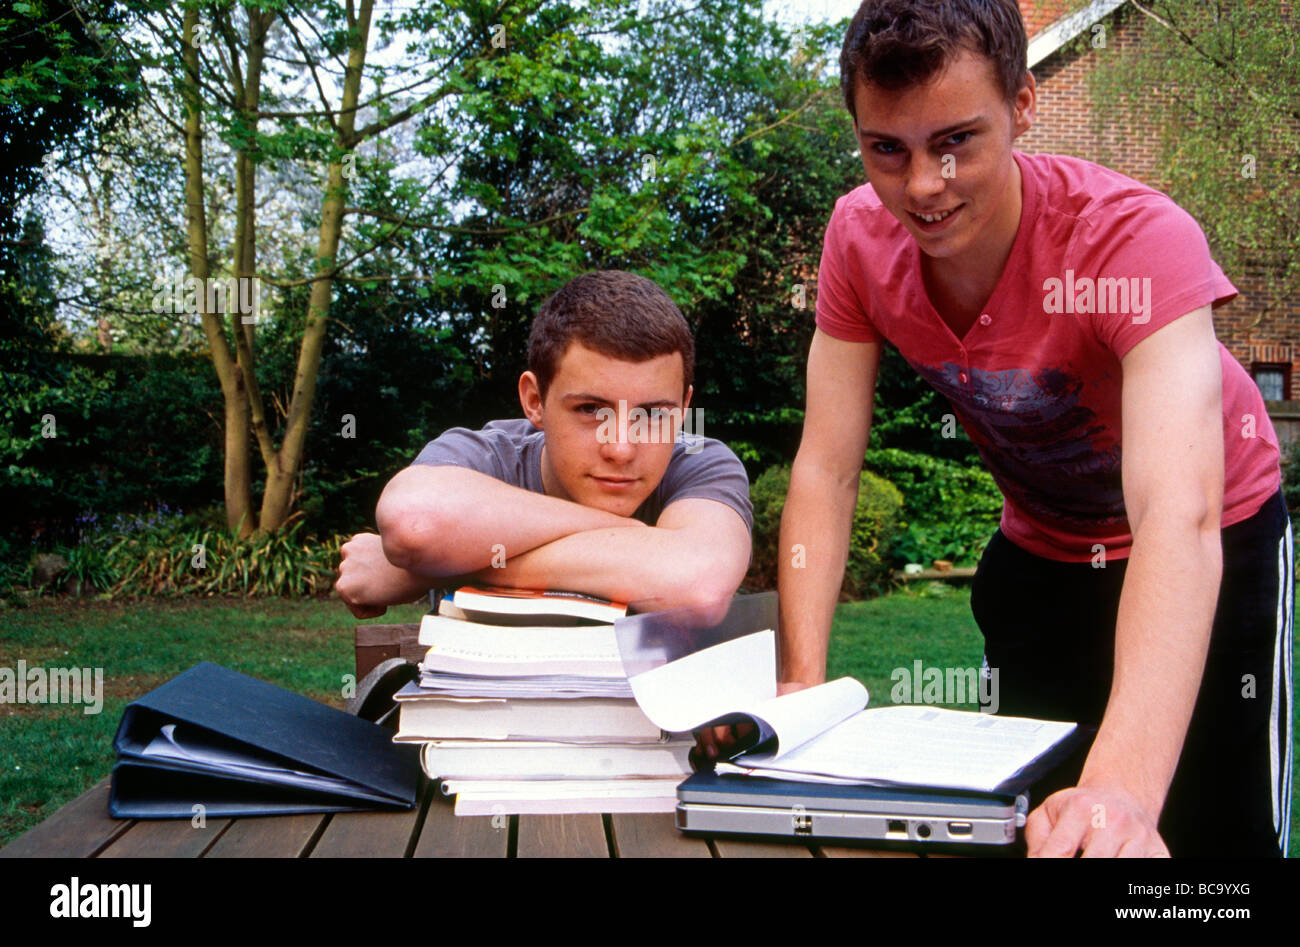 Non-identical twin brothers studying in their garden at home, Kent England - Stock Image